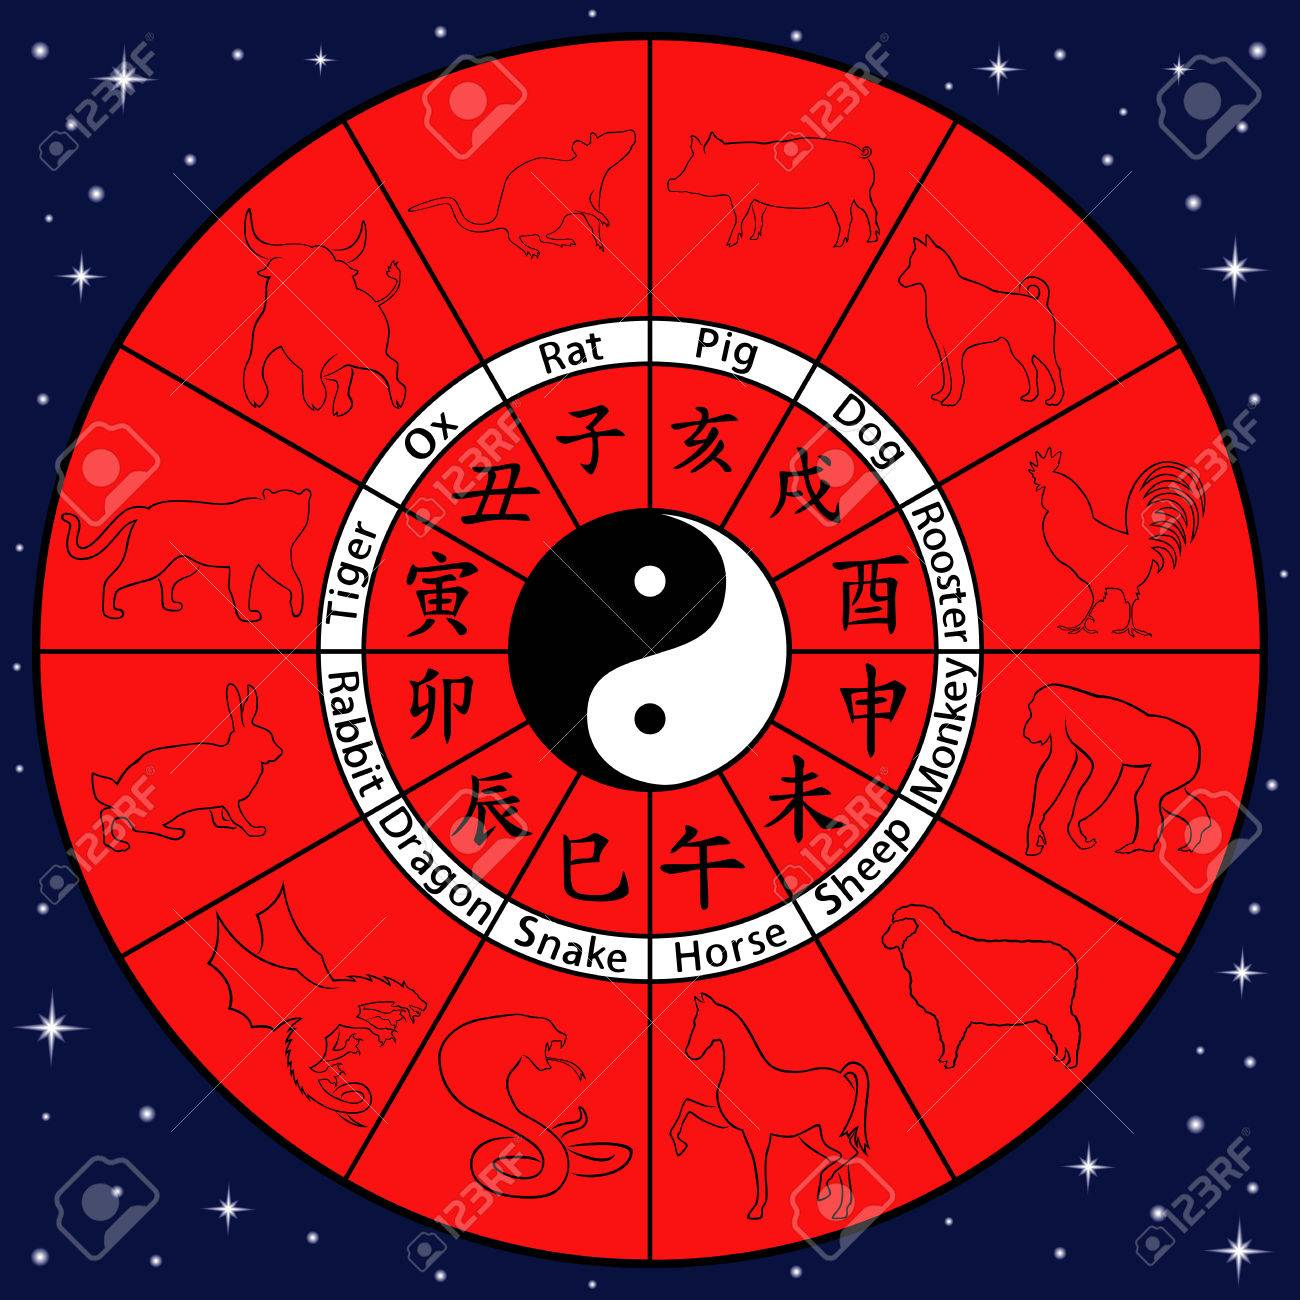 Chinese Zodiac With Animal Symbols On The Circle And Yin And Yang In